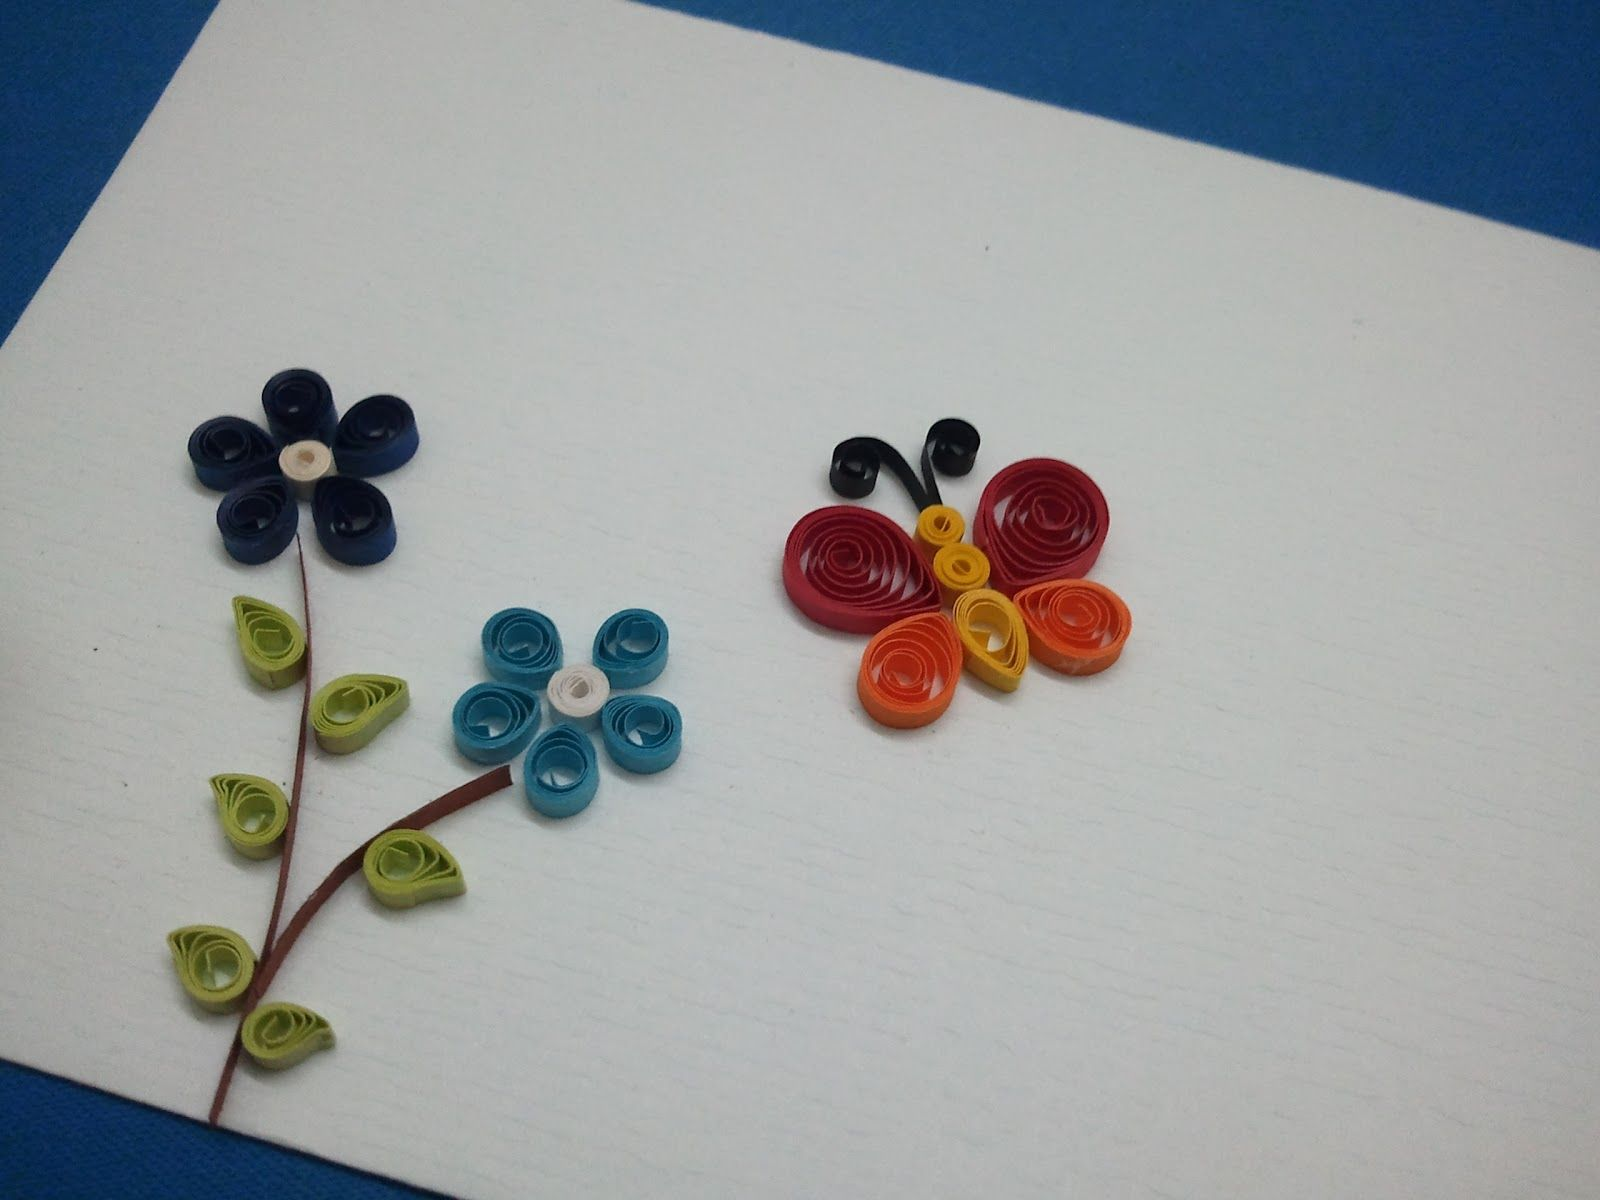 PHOTO BLOG: New Quilled Paper Work hd wallpapers | quilling ideas ... for Simple Quilling Designs For Envelopes  174mzq